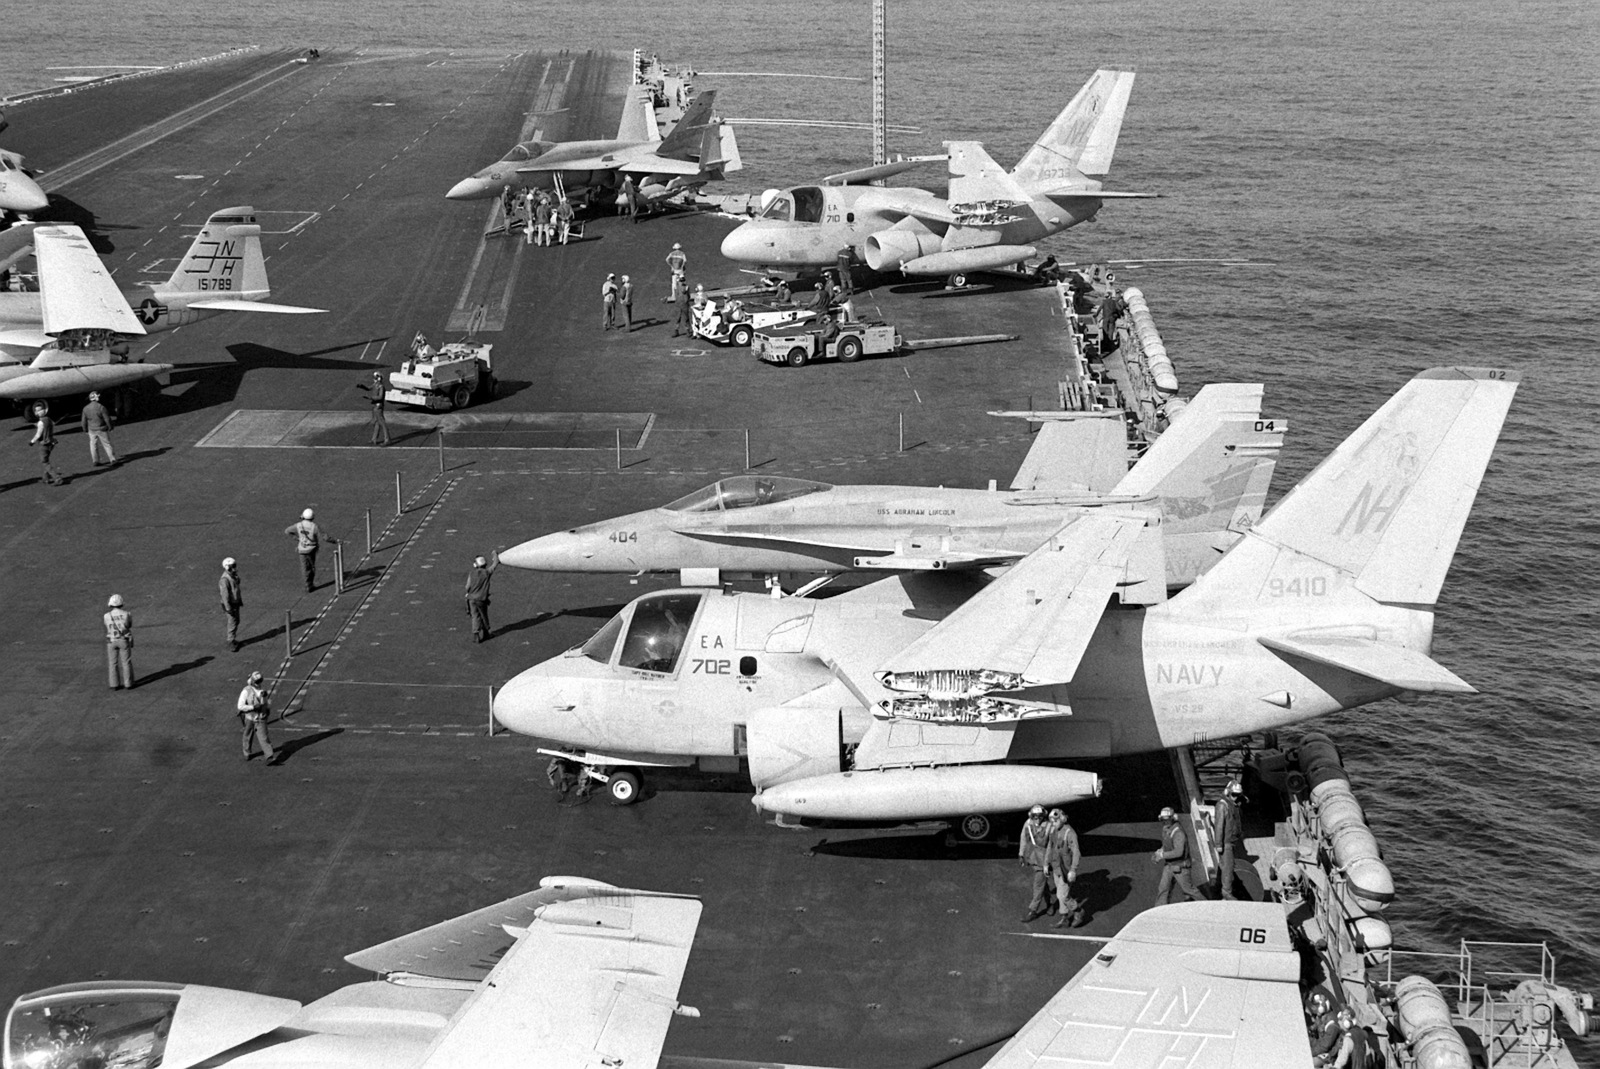 Various aircraft parked on the flight deck of the nuclear-powered aircraft carrier USS ABRAHAM LINCOLN (CVN-72) include Air Anti-submarine Squadron 29 (VS-29) S-3A Viking aircraft, Strike Fighter Squadron 305 (VFA-305) F/A-18 Hornet aircraft of the Naval Air Reserve, and Attack Squadron 95 (VA-95) A-6E Intruder aircraft